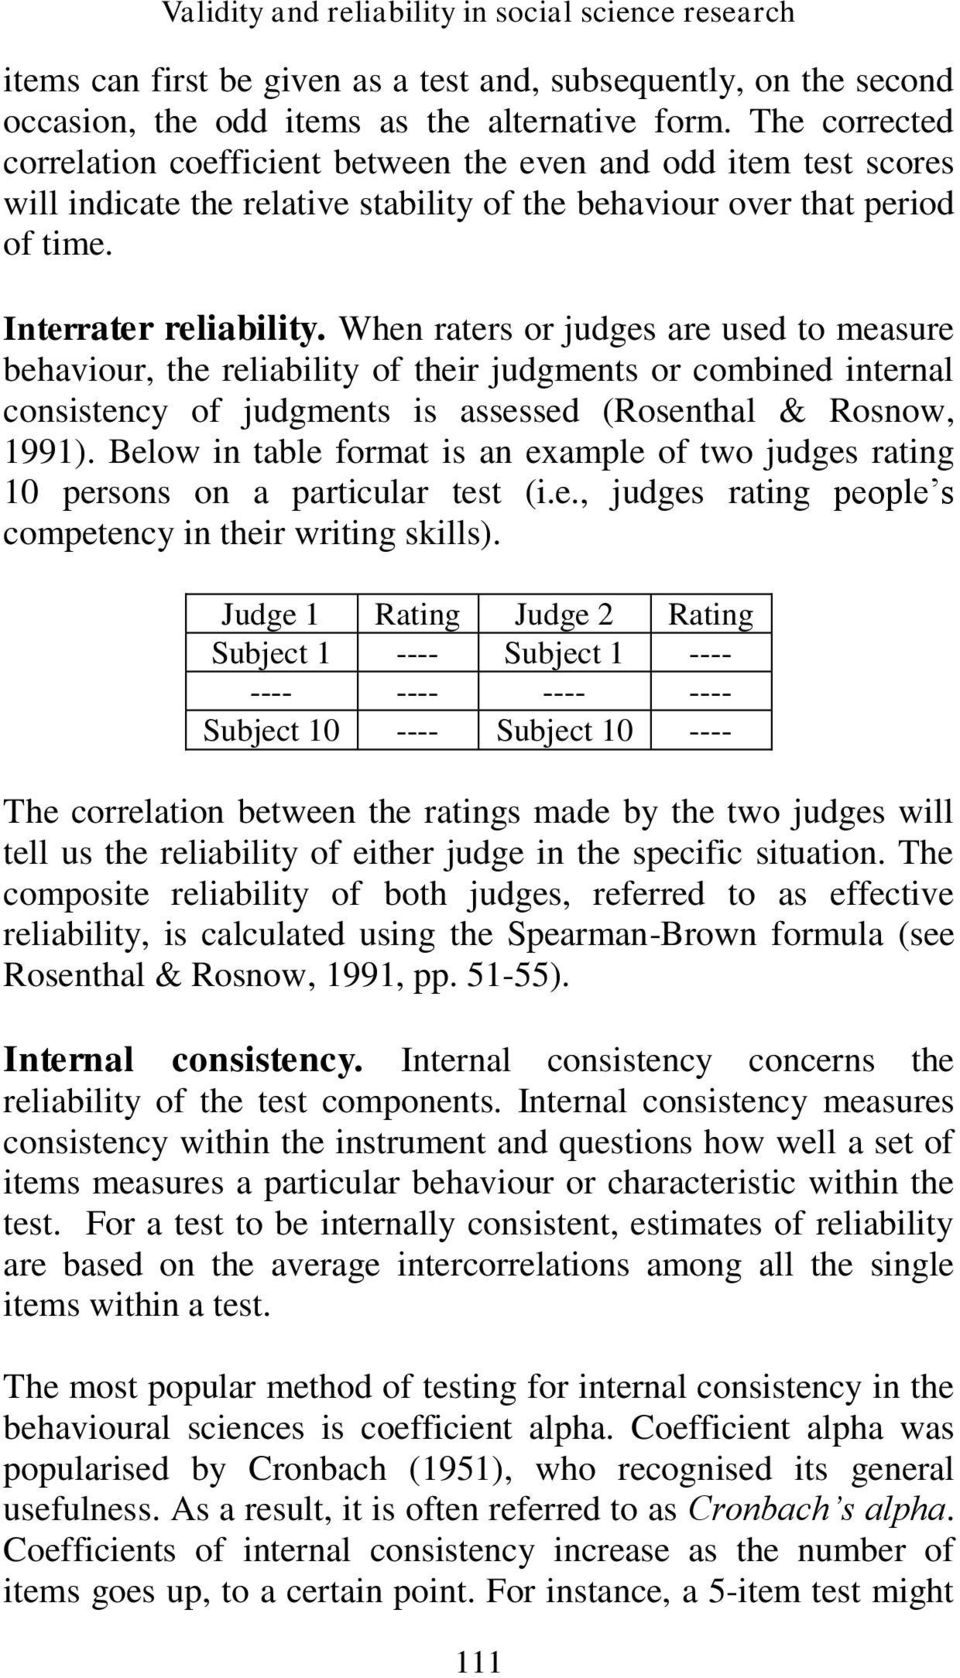 When raters or judges are used to measure behaviour, the reliability of their judgments or combined internal consistency of judgments is assessed (Rosenthal & Rosnow, 1991).